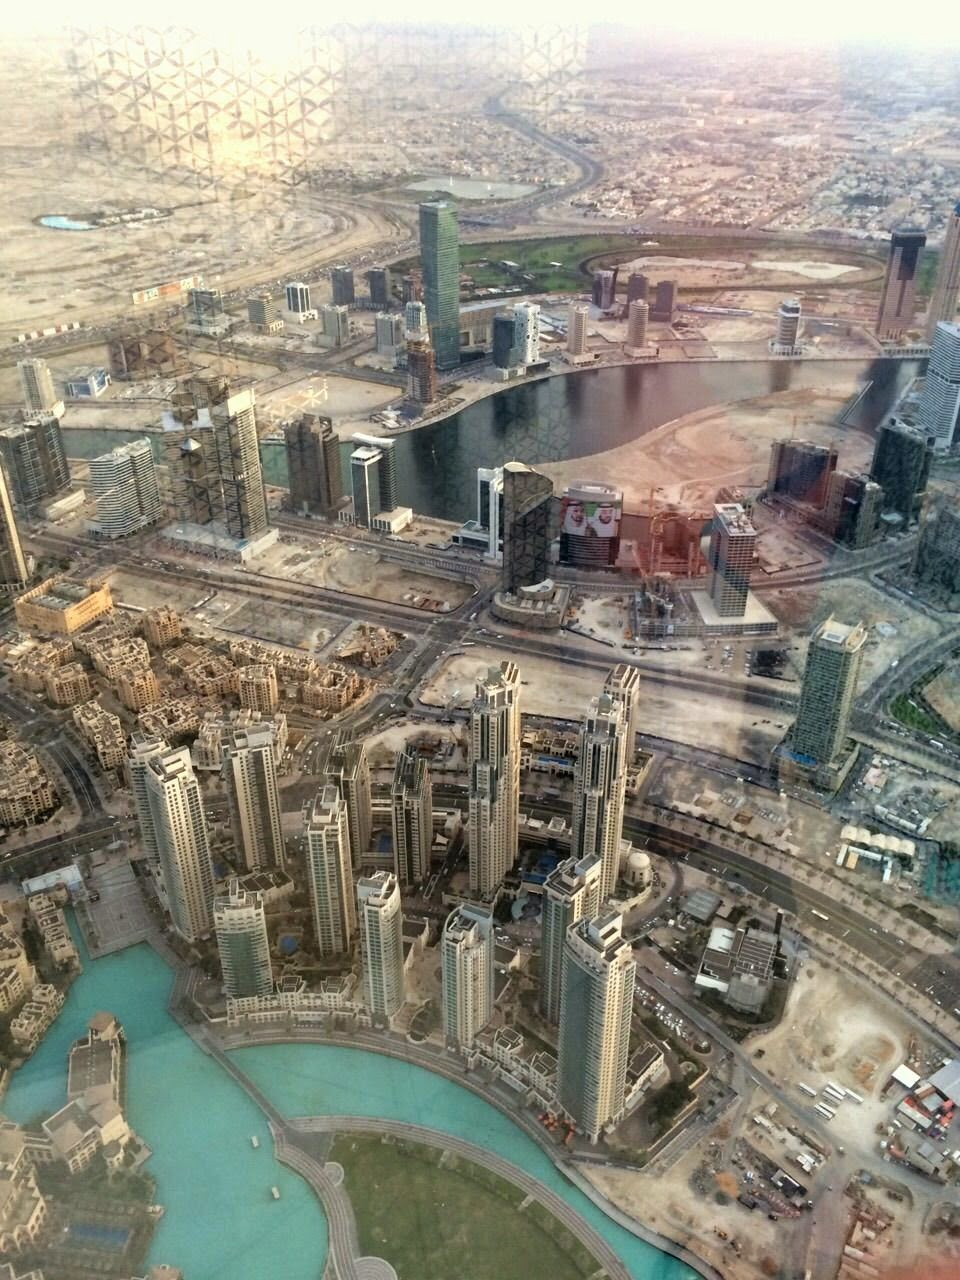 Looking out at Dubai from the 148th floor of the Burj Khalifa Tower.